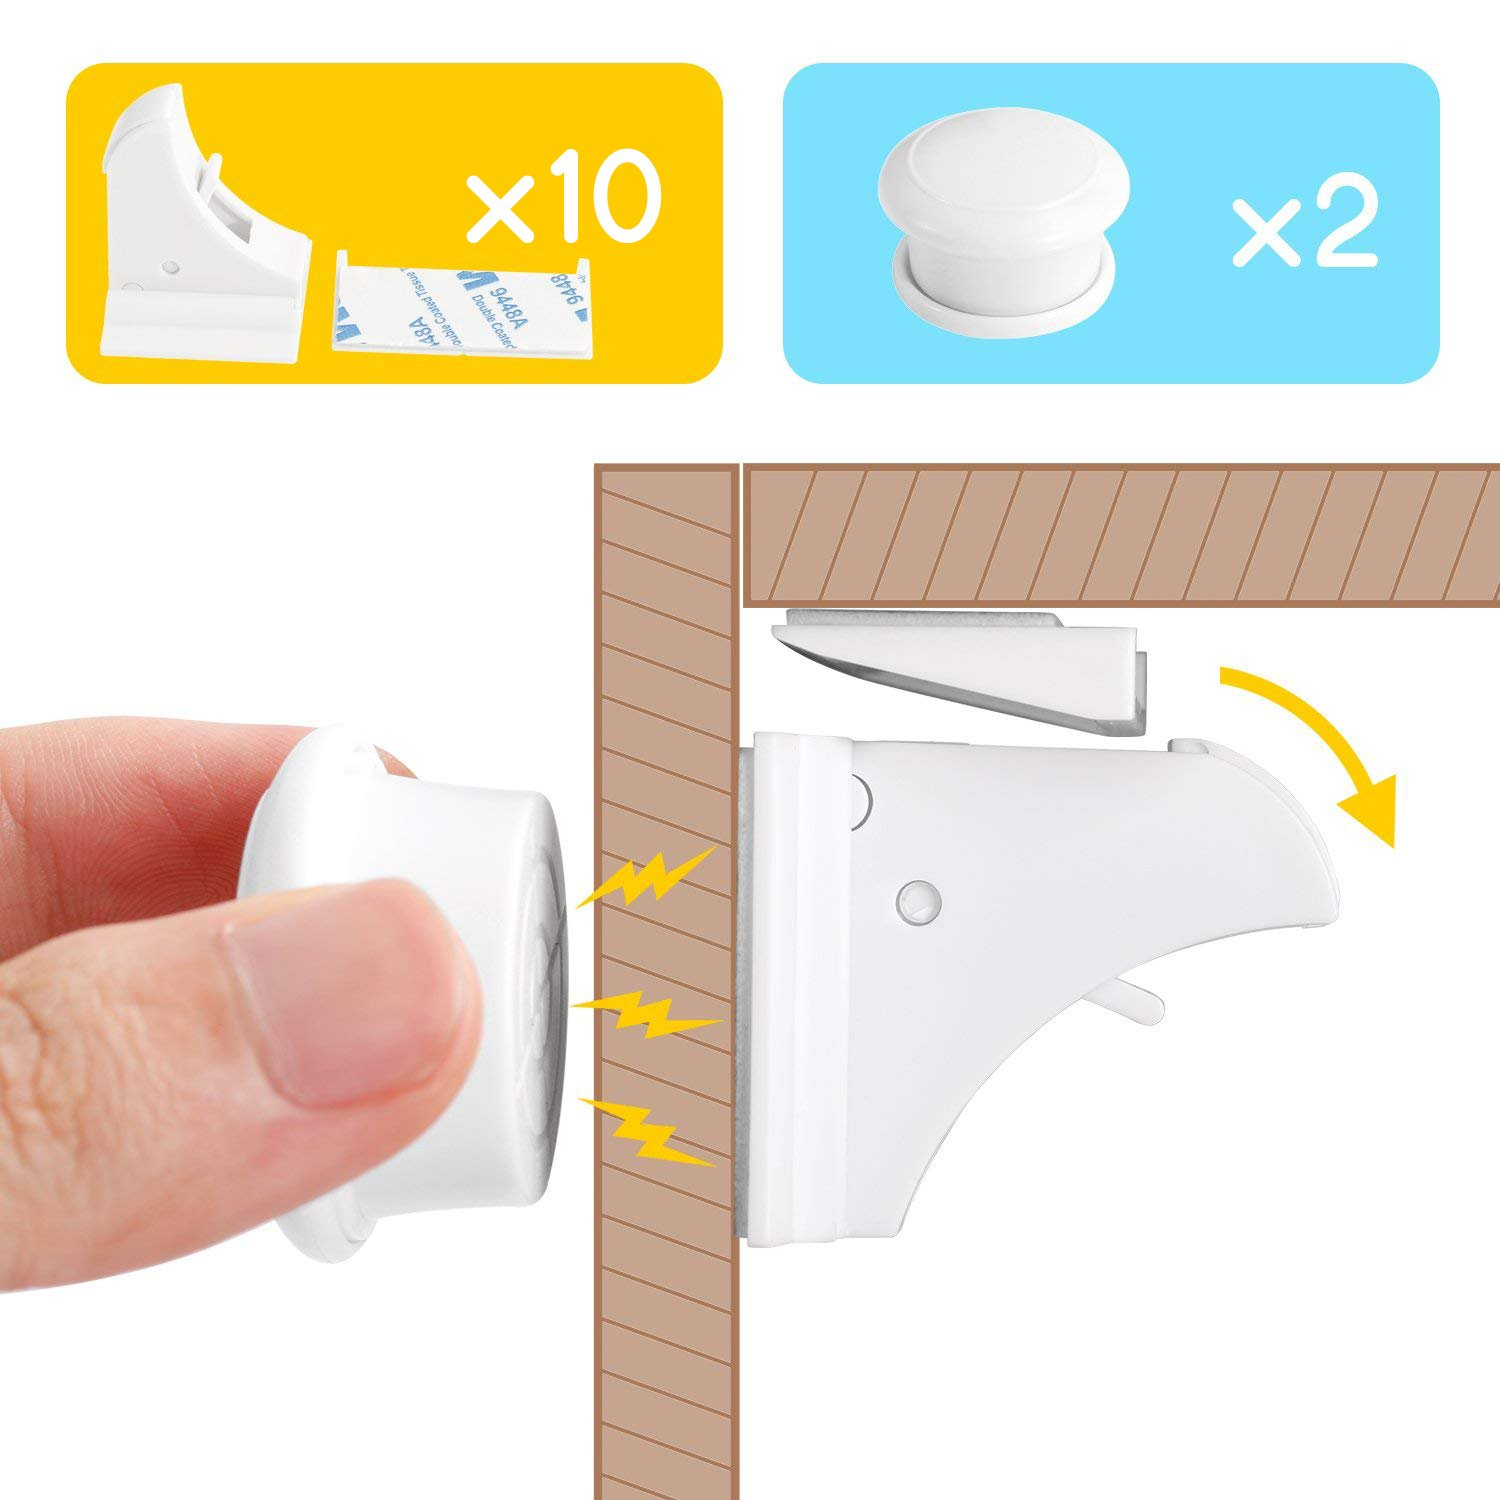 Baby Safety Magic Cupboard Locks Set 10 Locks+2 Keys Strong Magnetic Adhesive Lock No Drilling No Tools and Screw Easy install for Cabinets and Drawers to Protect Your Kids-White LEVIN